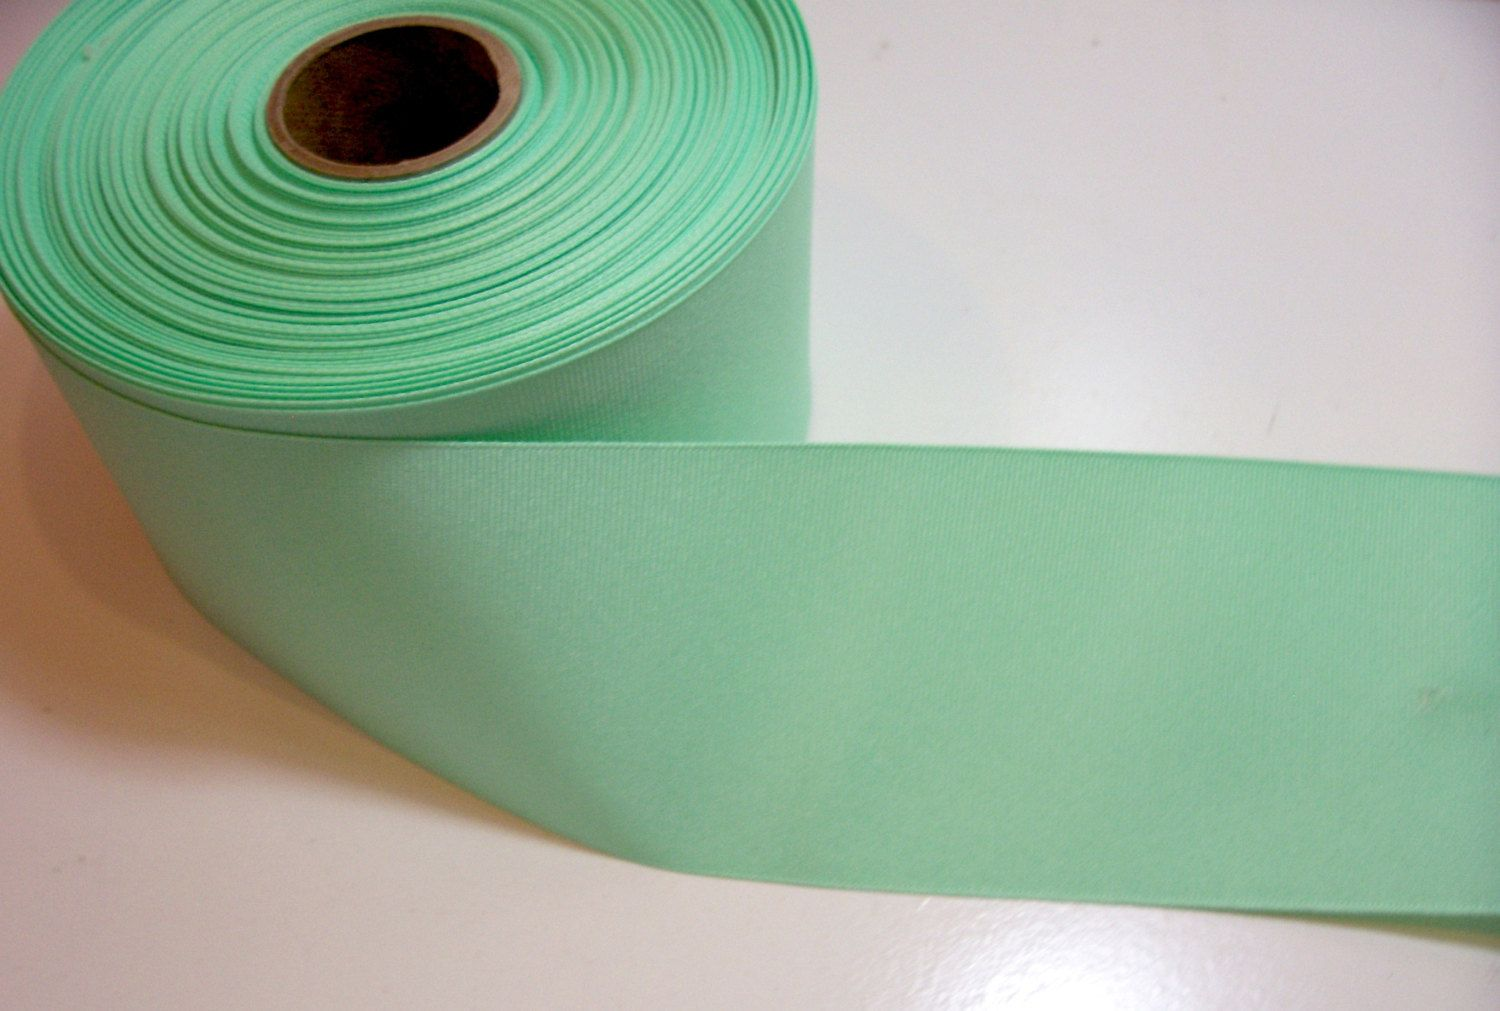 Wide Green Ribbon, Mint Green Grosgrain Ribbon 3 inches wide x 3 ...